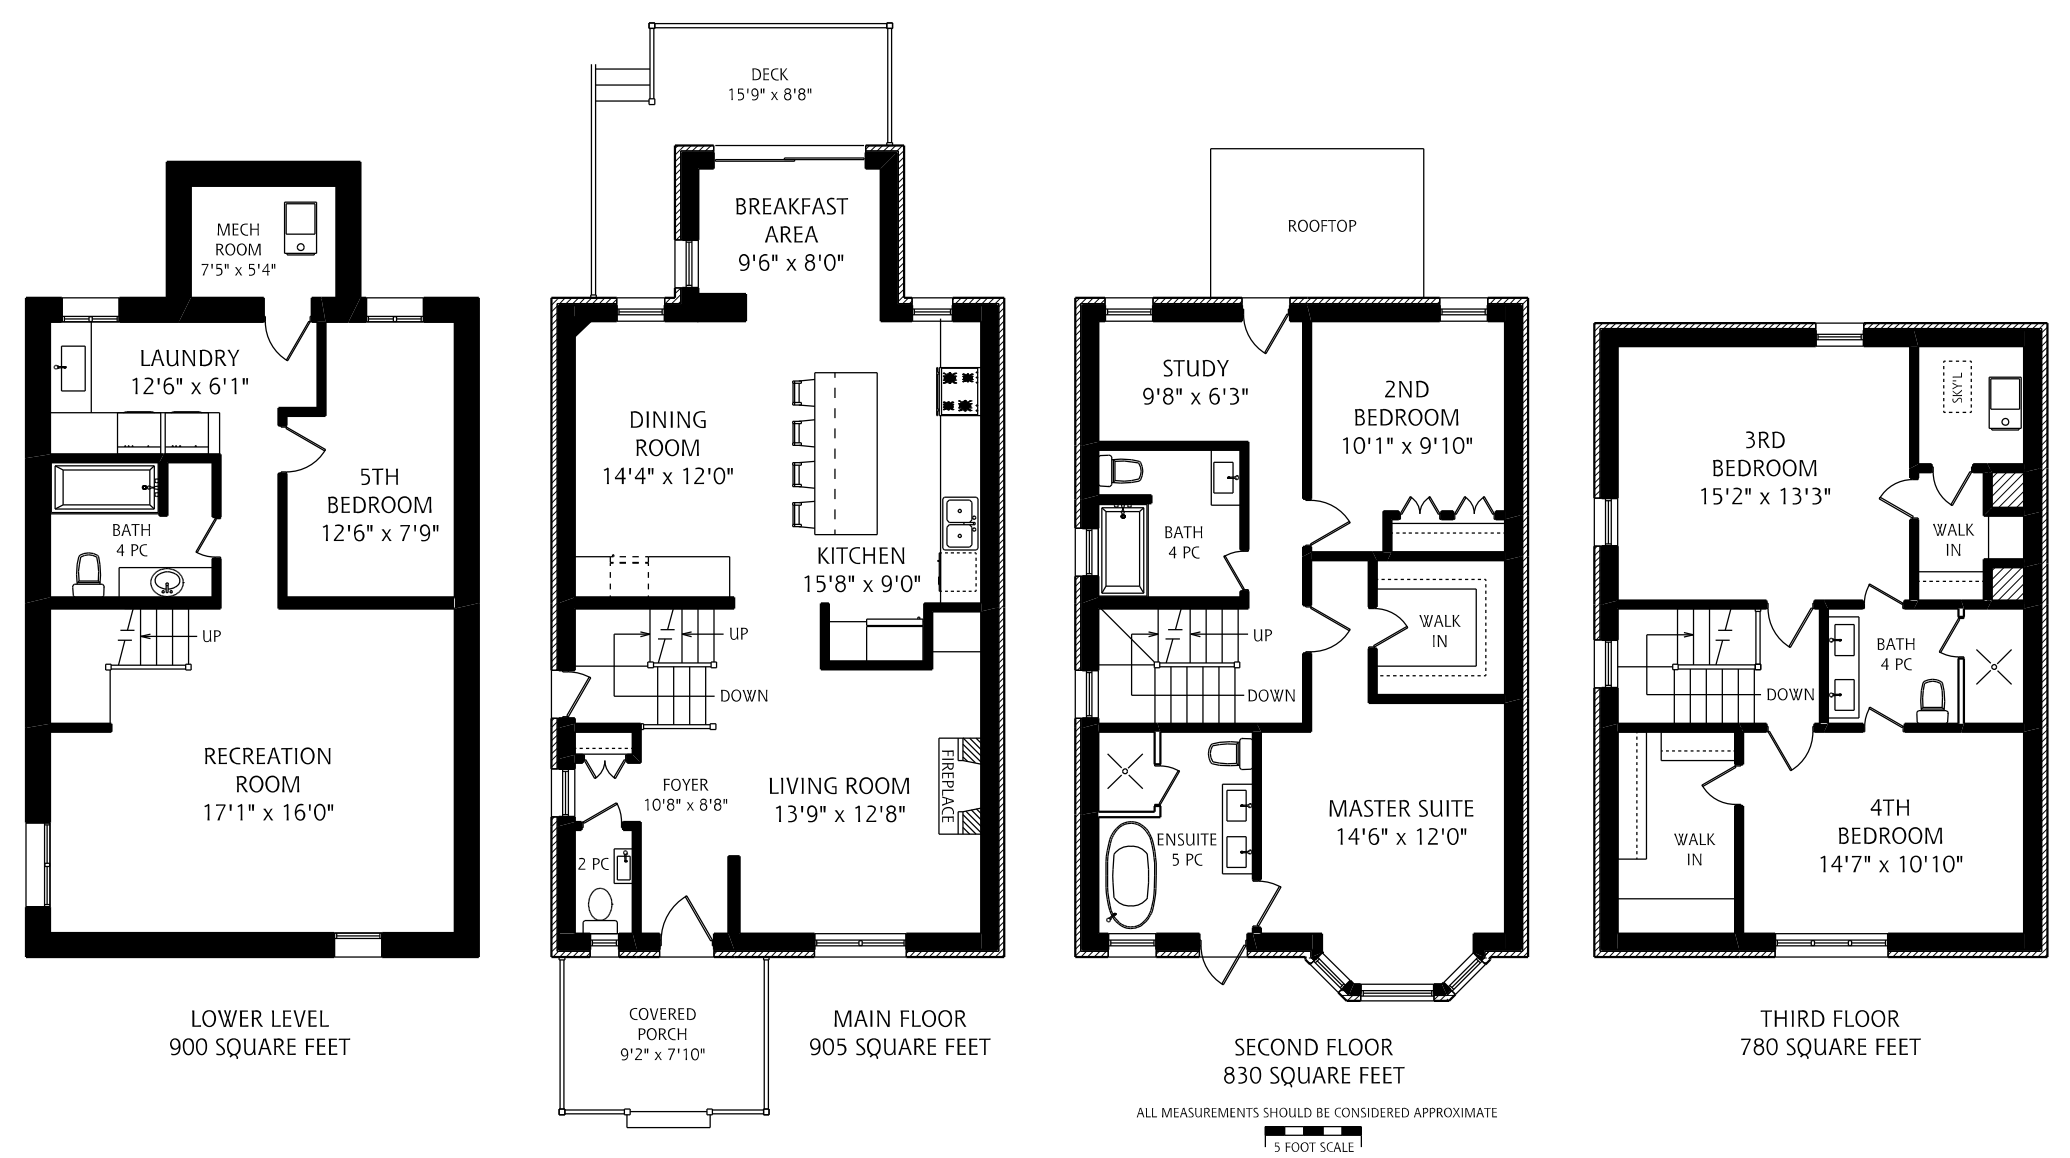 135 Cottingham St floorplan.png